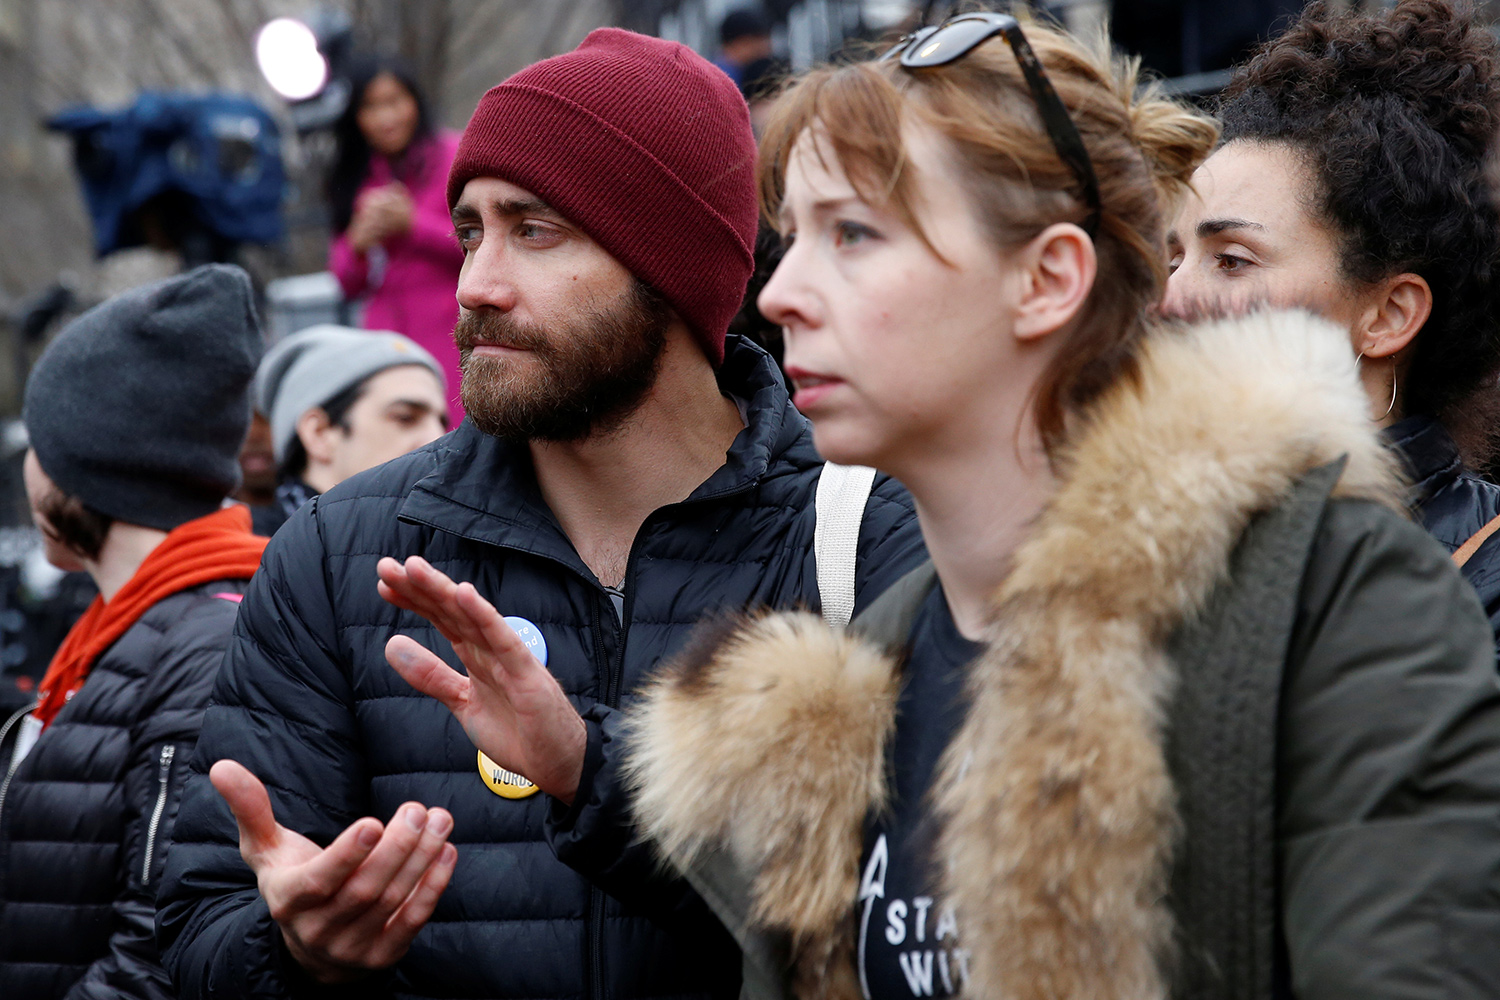 Actor Jake Gyllenhaal listens to speakers at the Women's March in Washington U.S., January 21, 2017. REUTERS/Shannon Stapleton - RTSWQCW